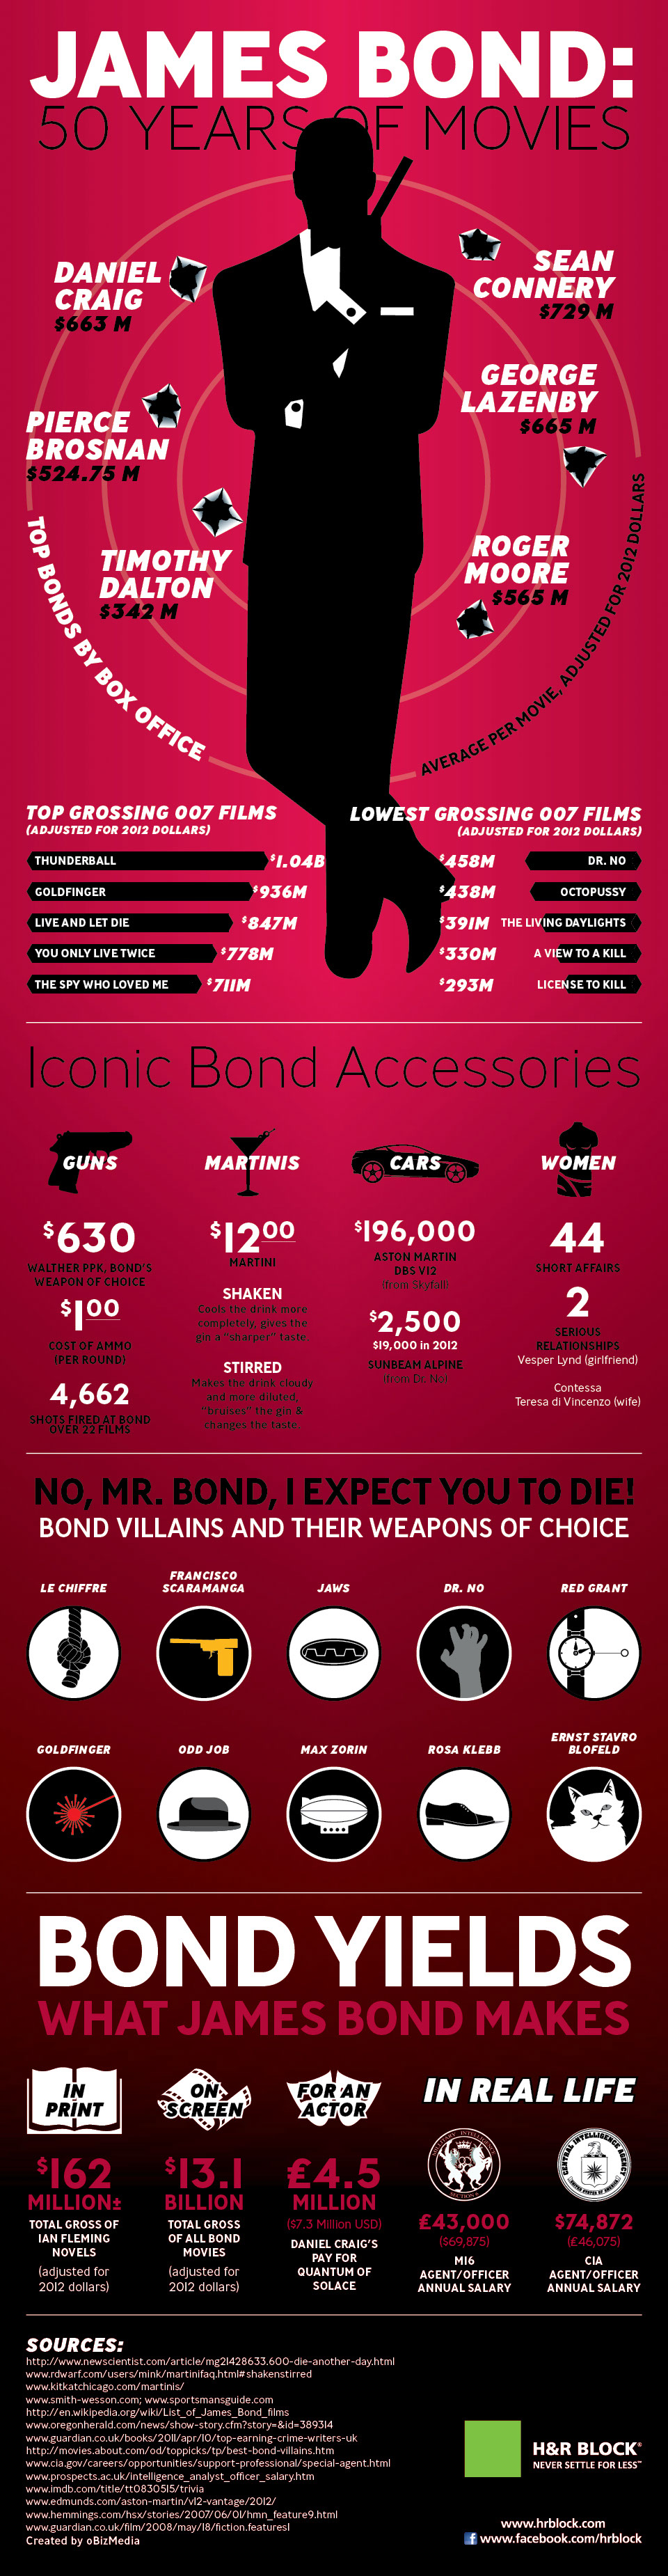 James Bond Values-Infographic